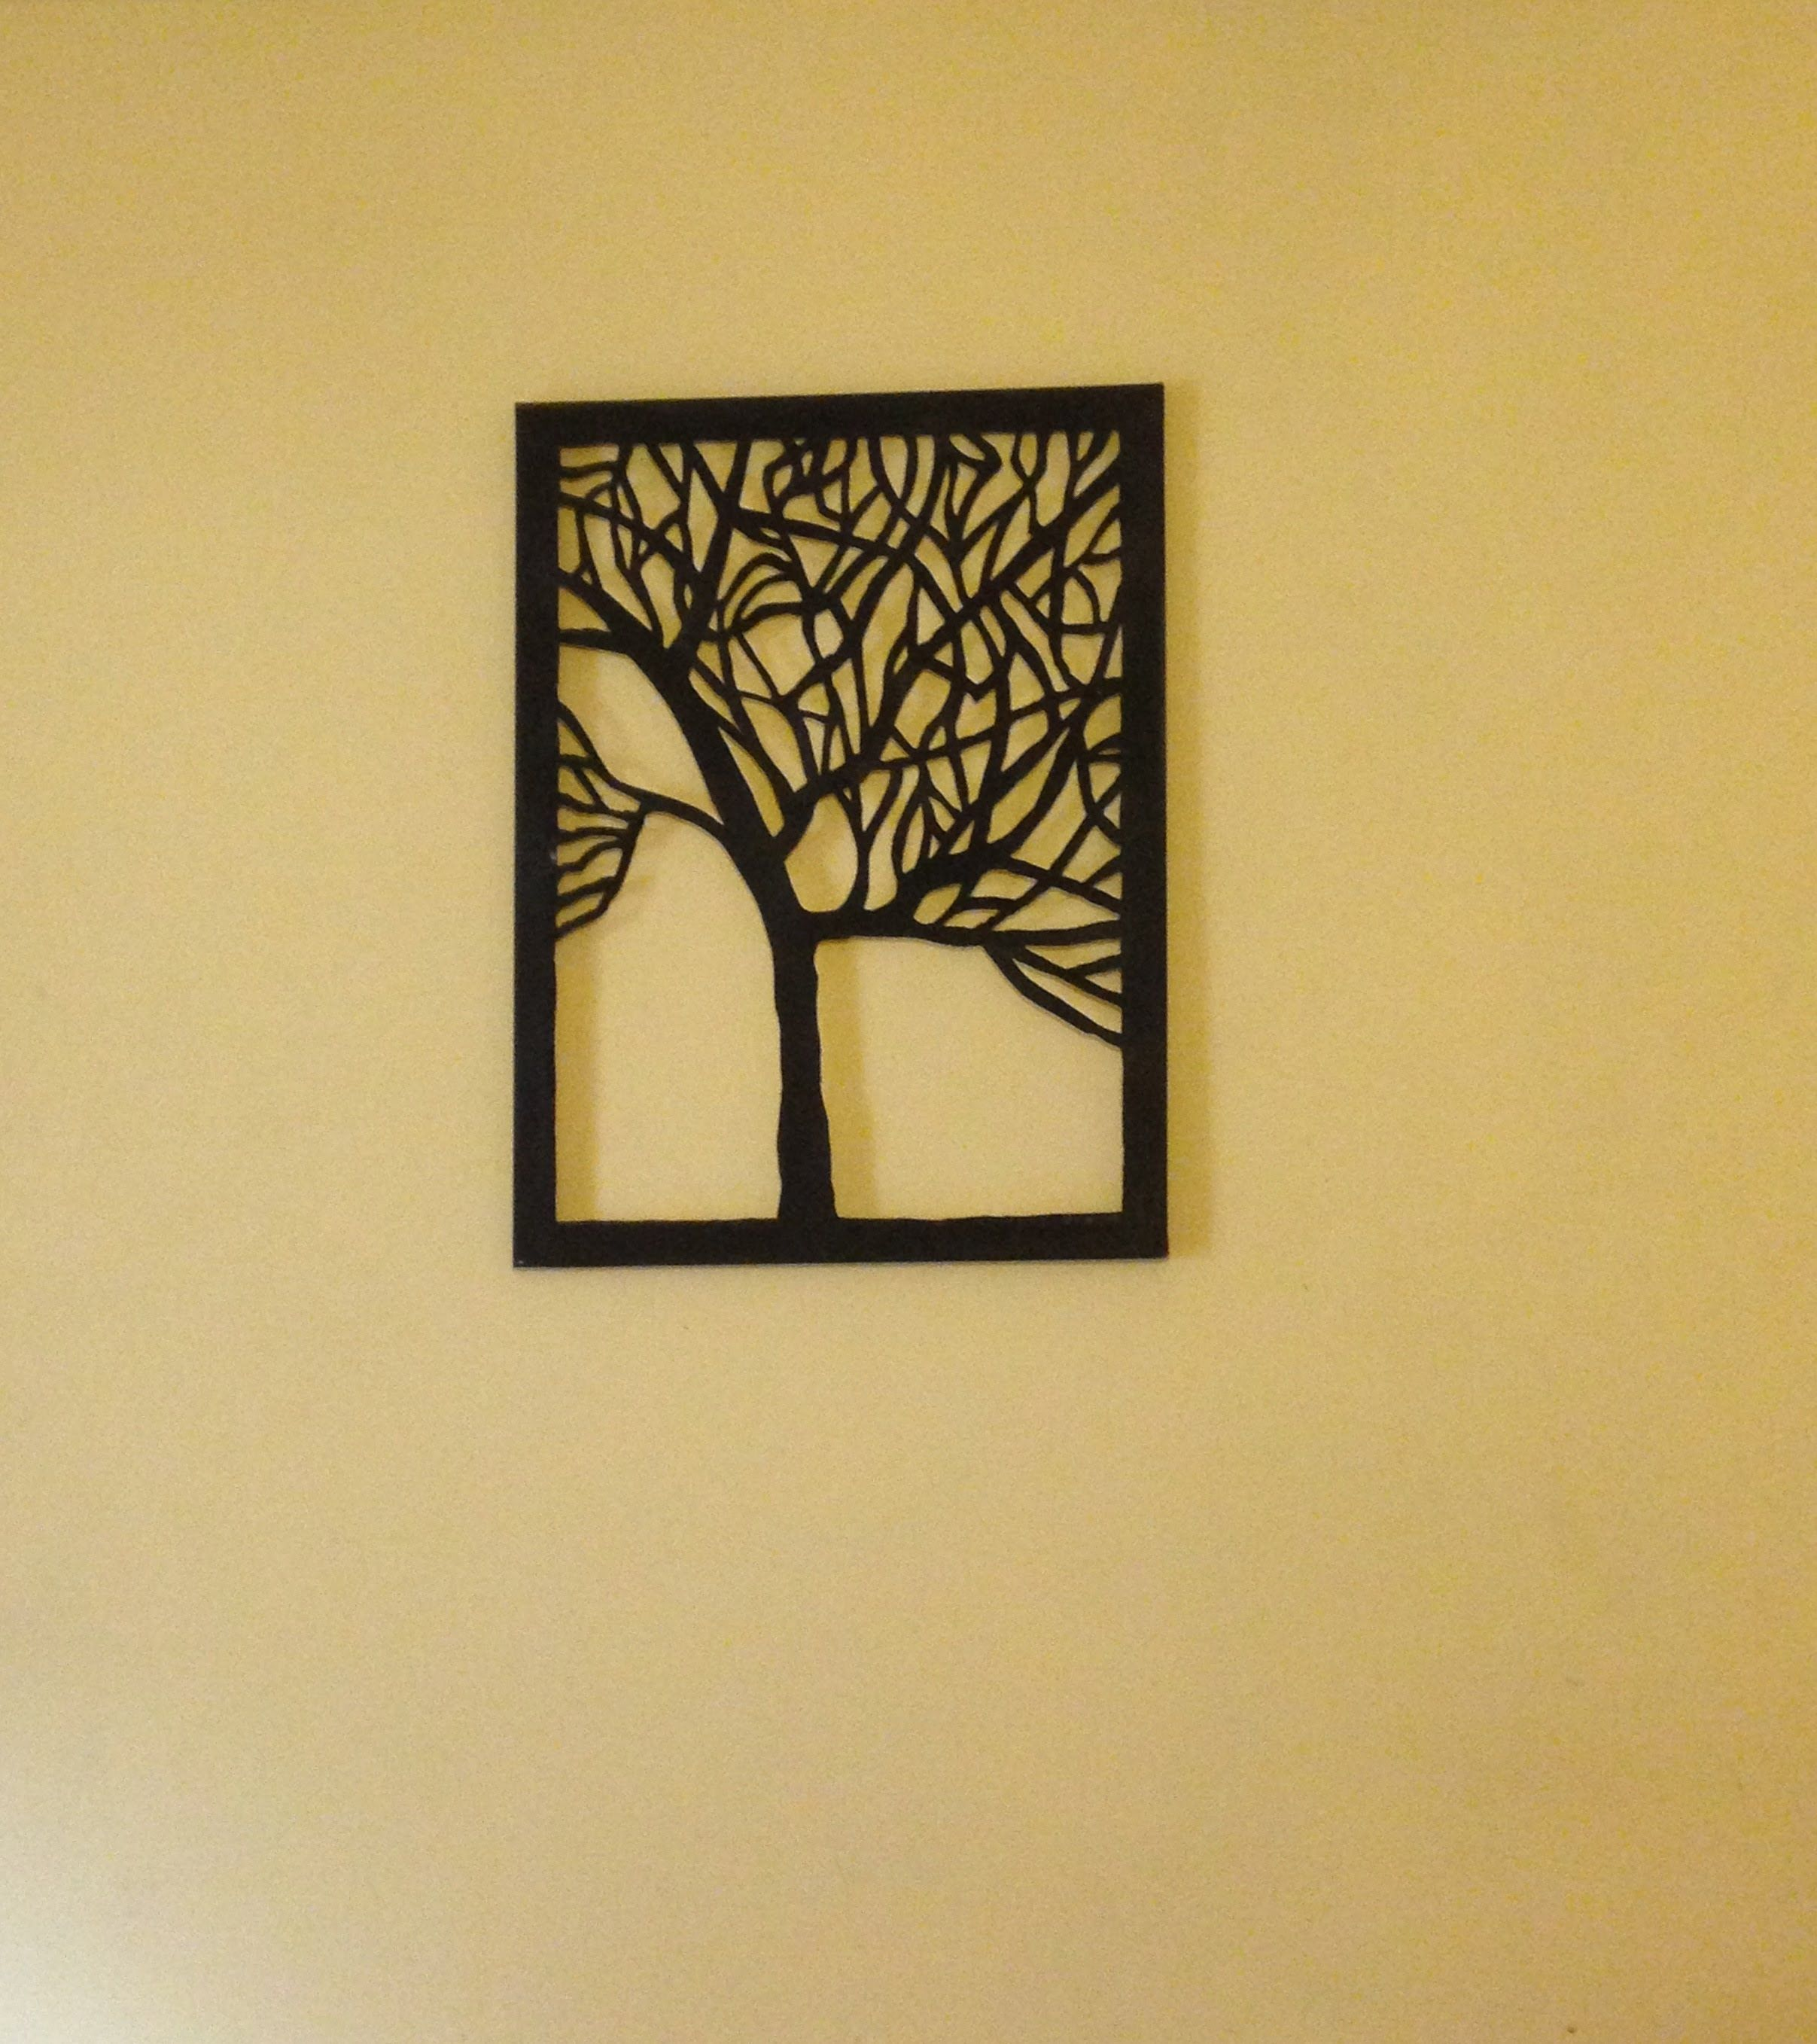 Amazing DIY canvas tree cut-out (wall art home decor idea | Diy ...